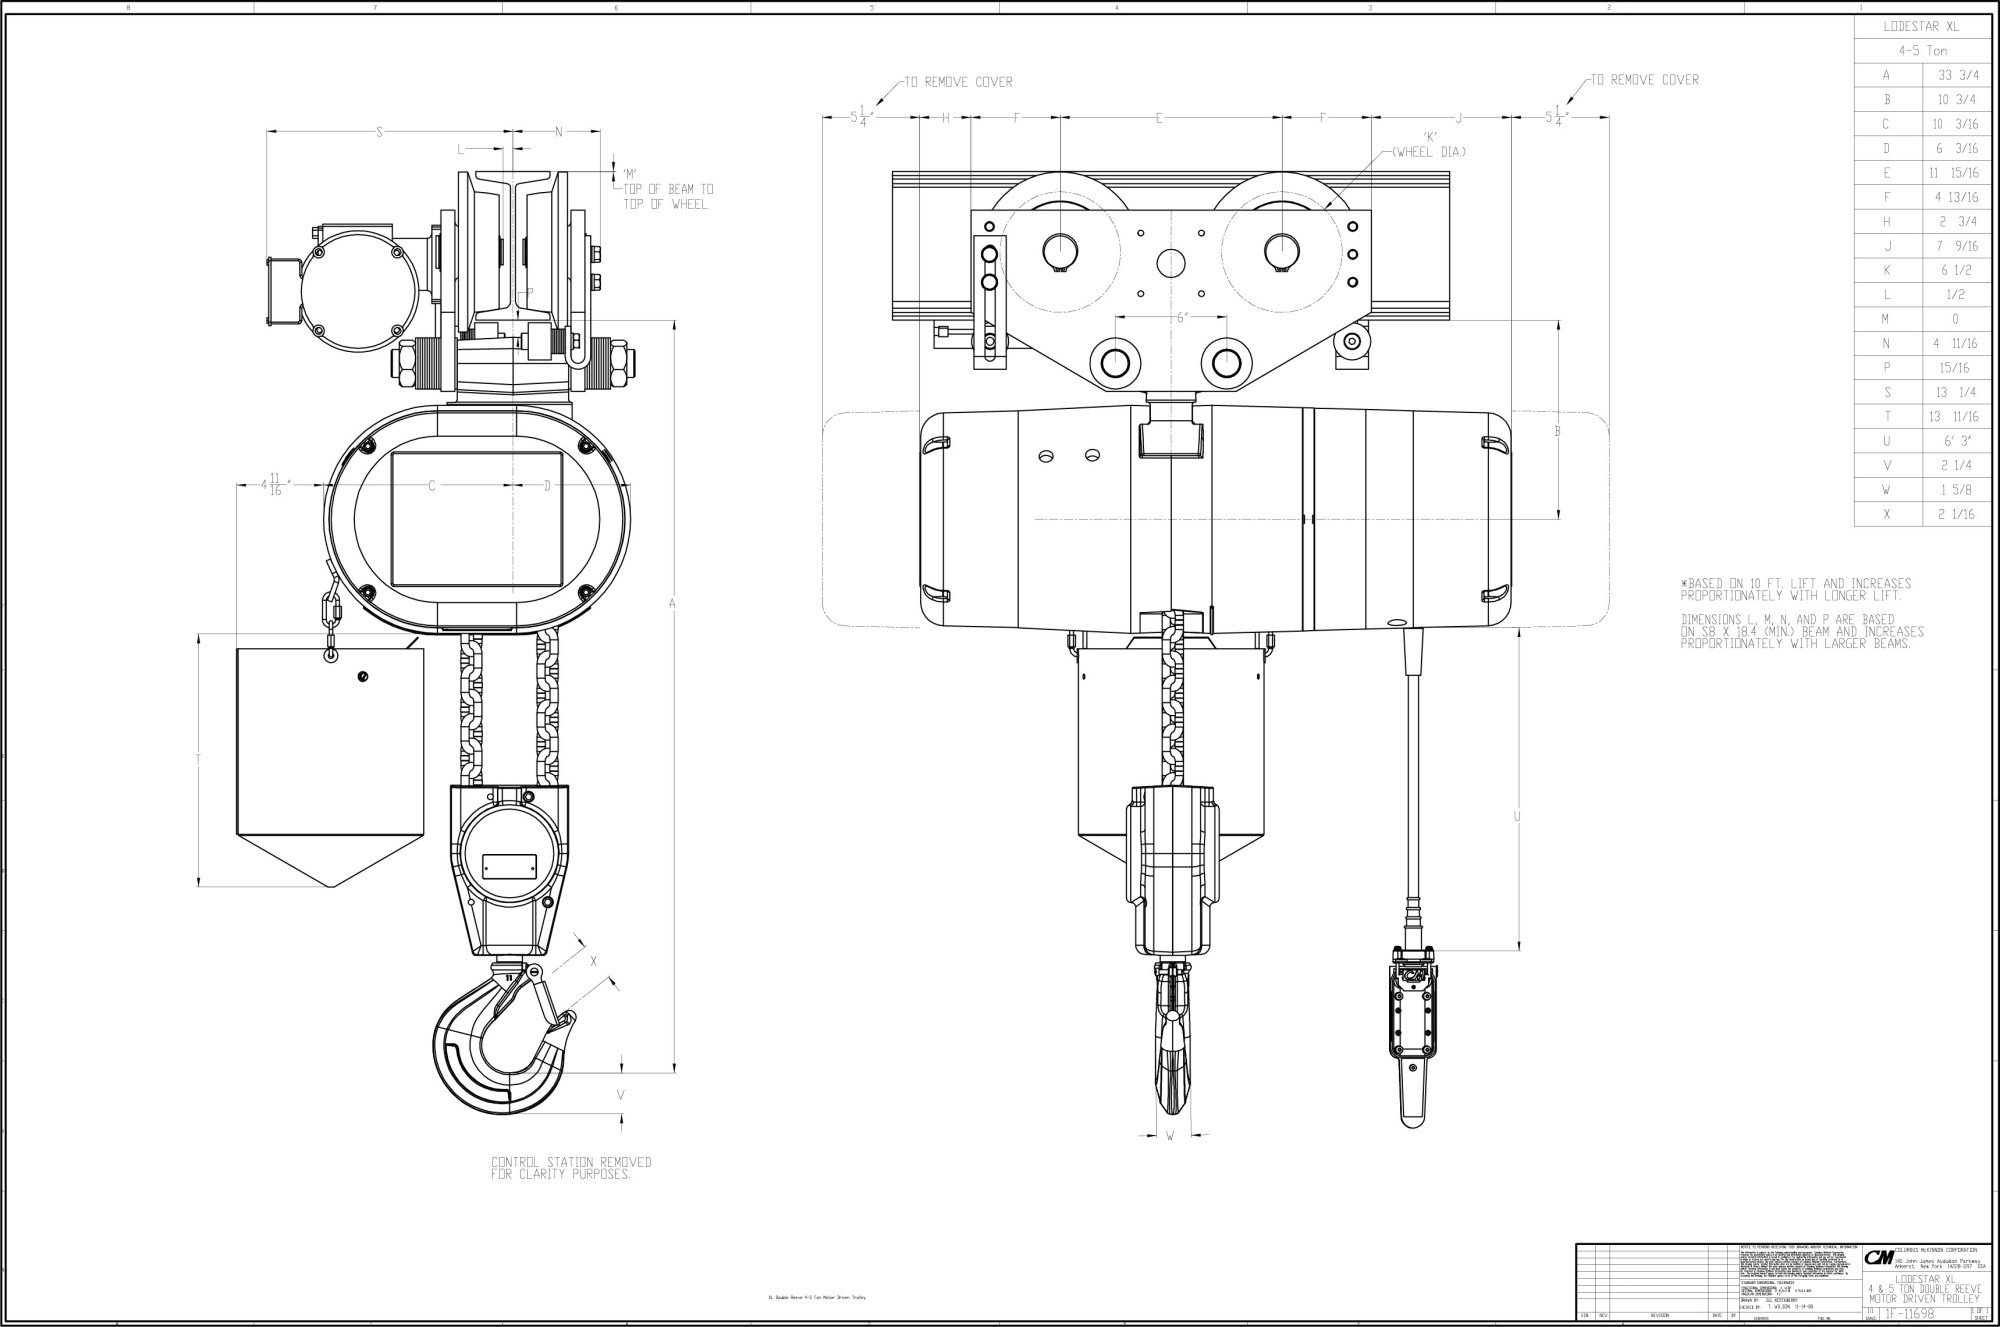 hight resolution of 3 4 ton chain hoist diagram wiring diagrams chain fall hoist 3 4 ton chain hoist diagram